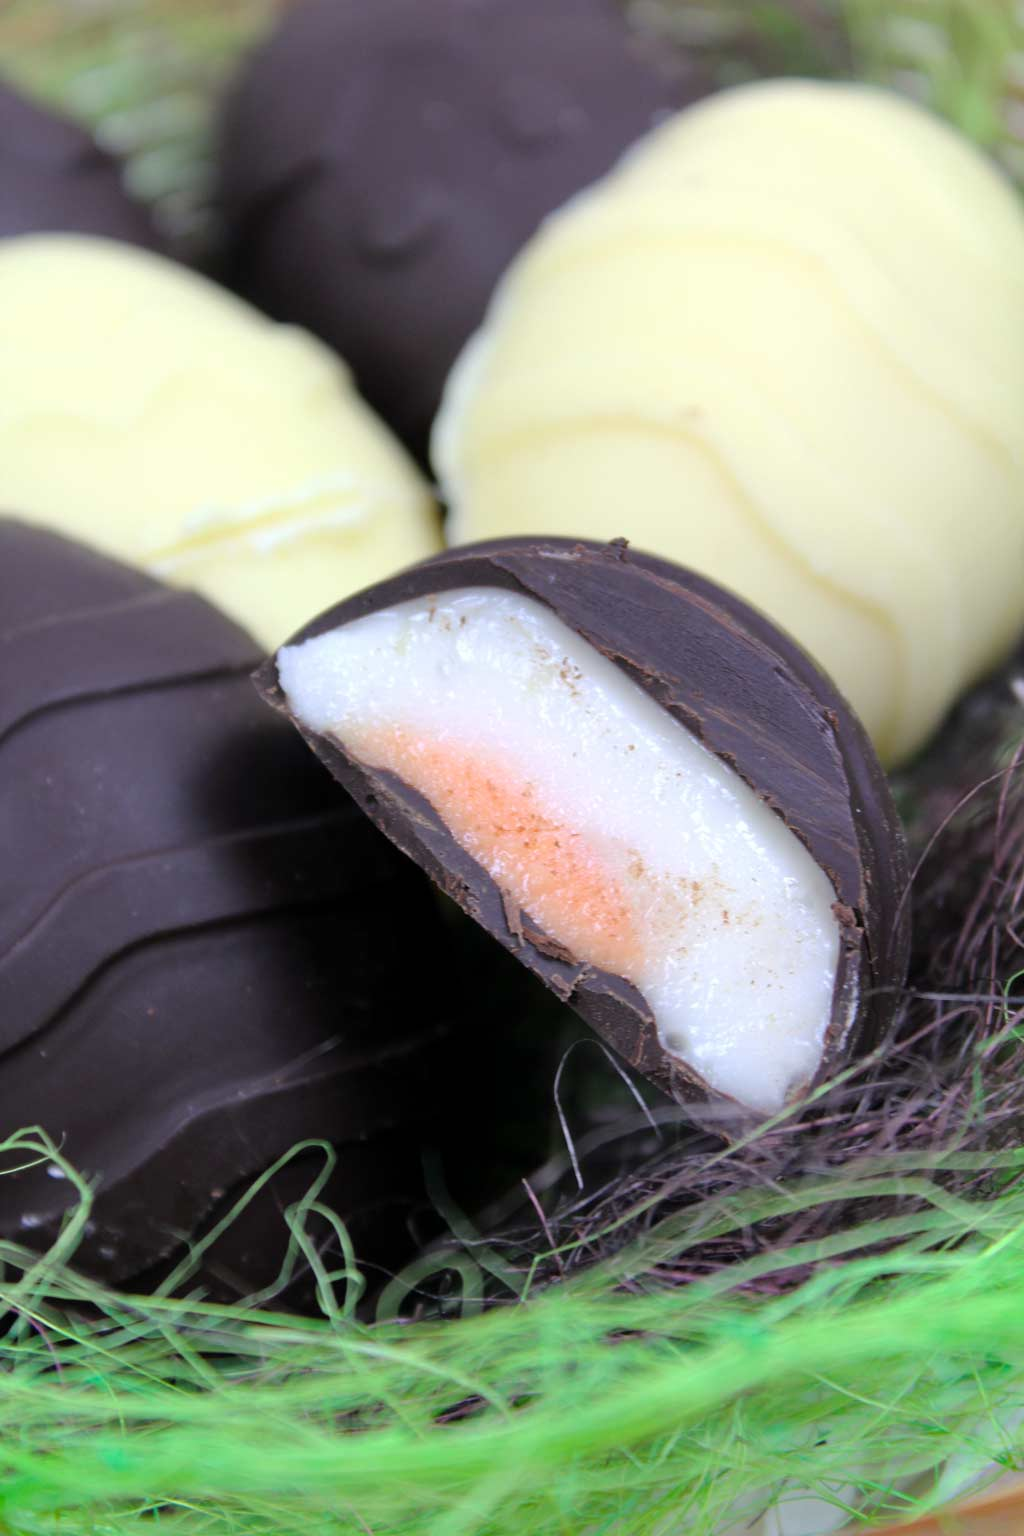 A basket full of vegan creme eggs. One at the front is cut in half to show the fondant filling.